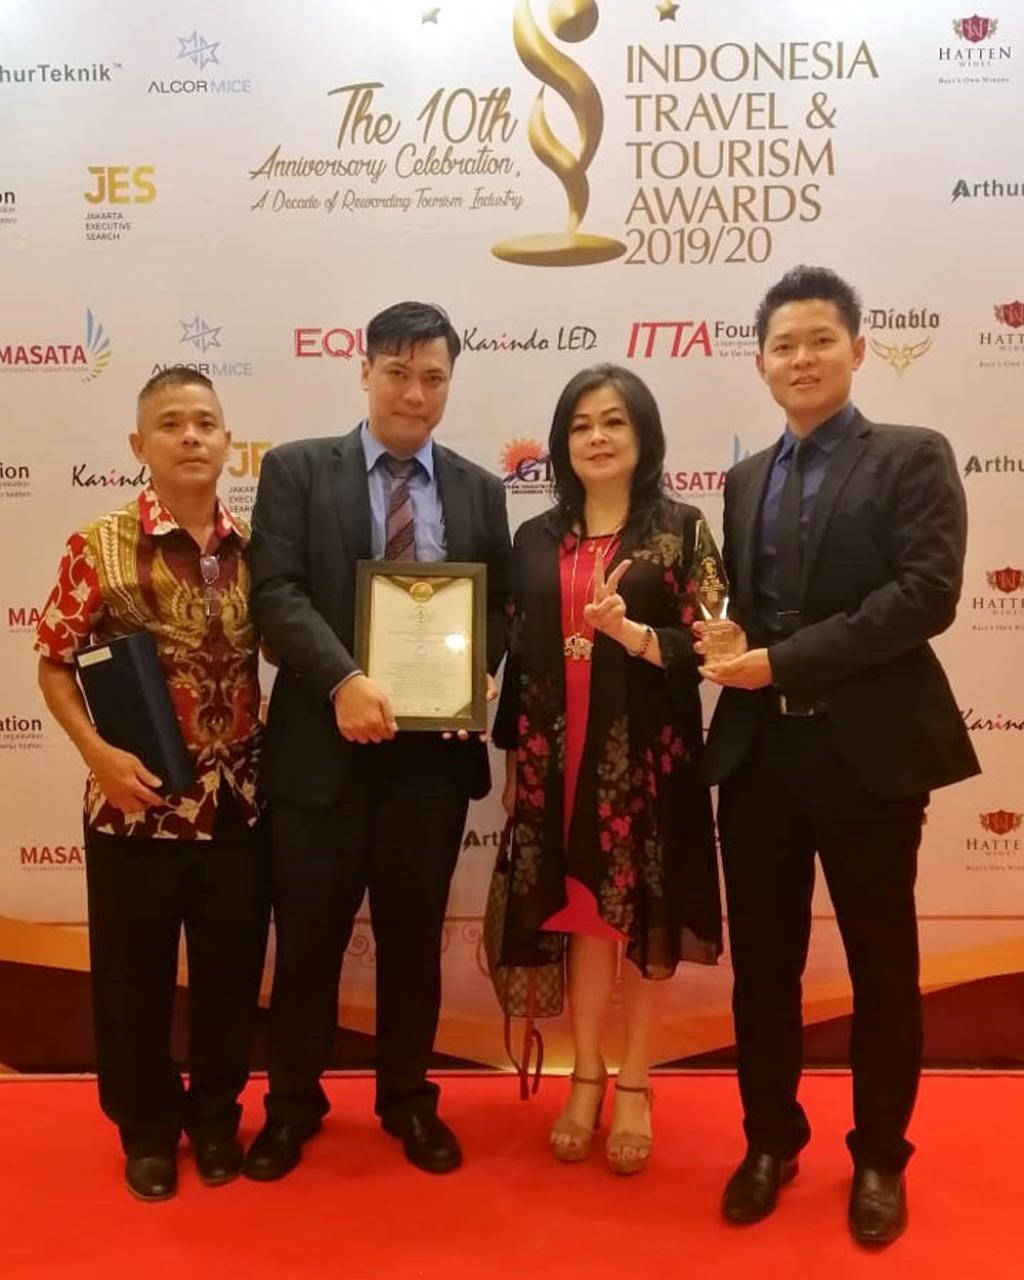 The Duck King Group Win Indonesia Travel & Tourism Awards 2019/2020